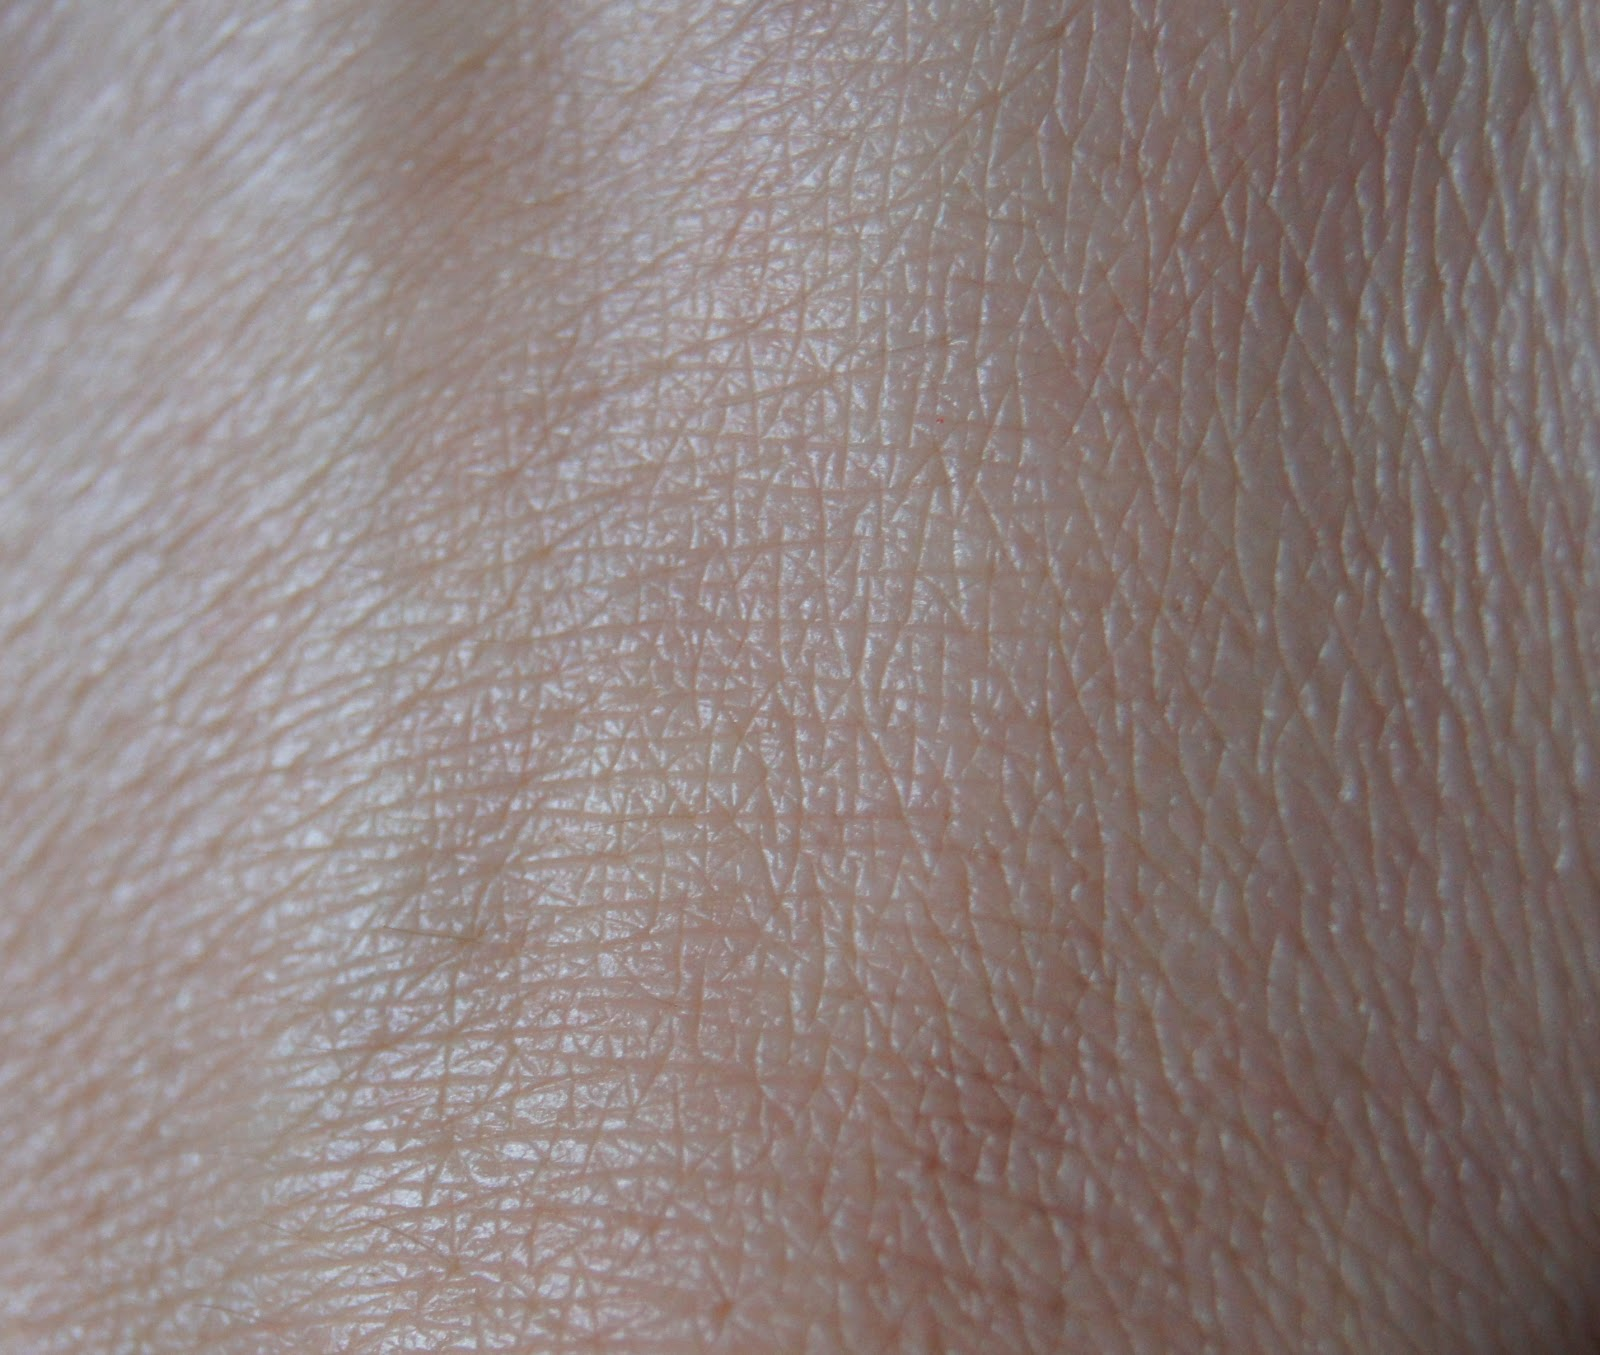 laura mercier oil free tinted moisturizer nude swatch